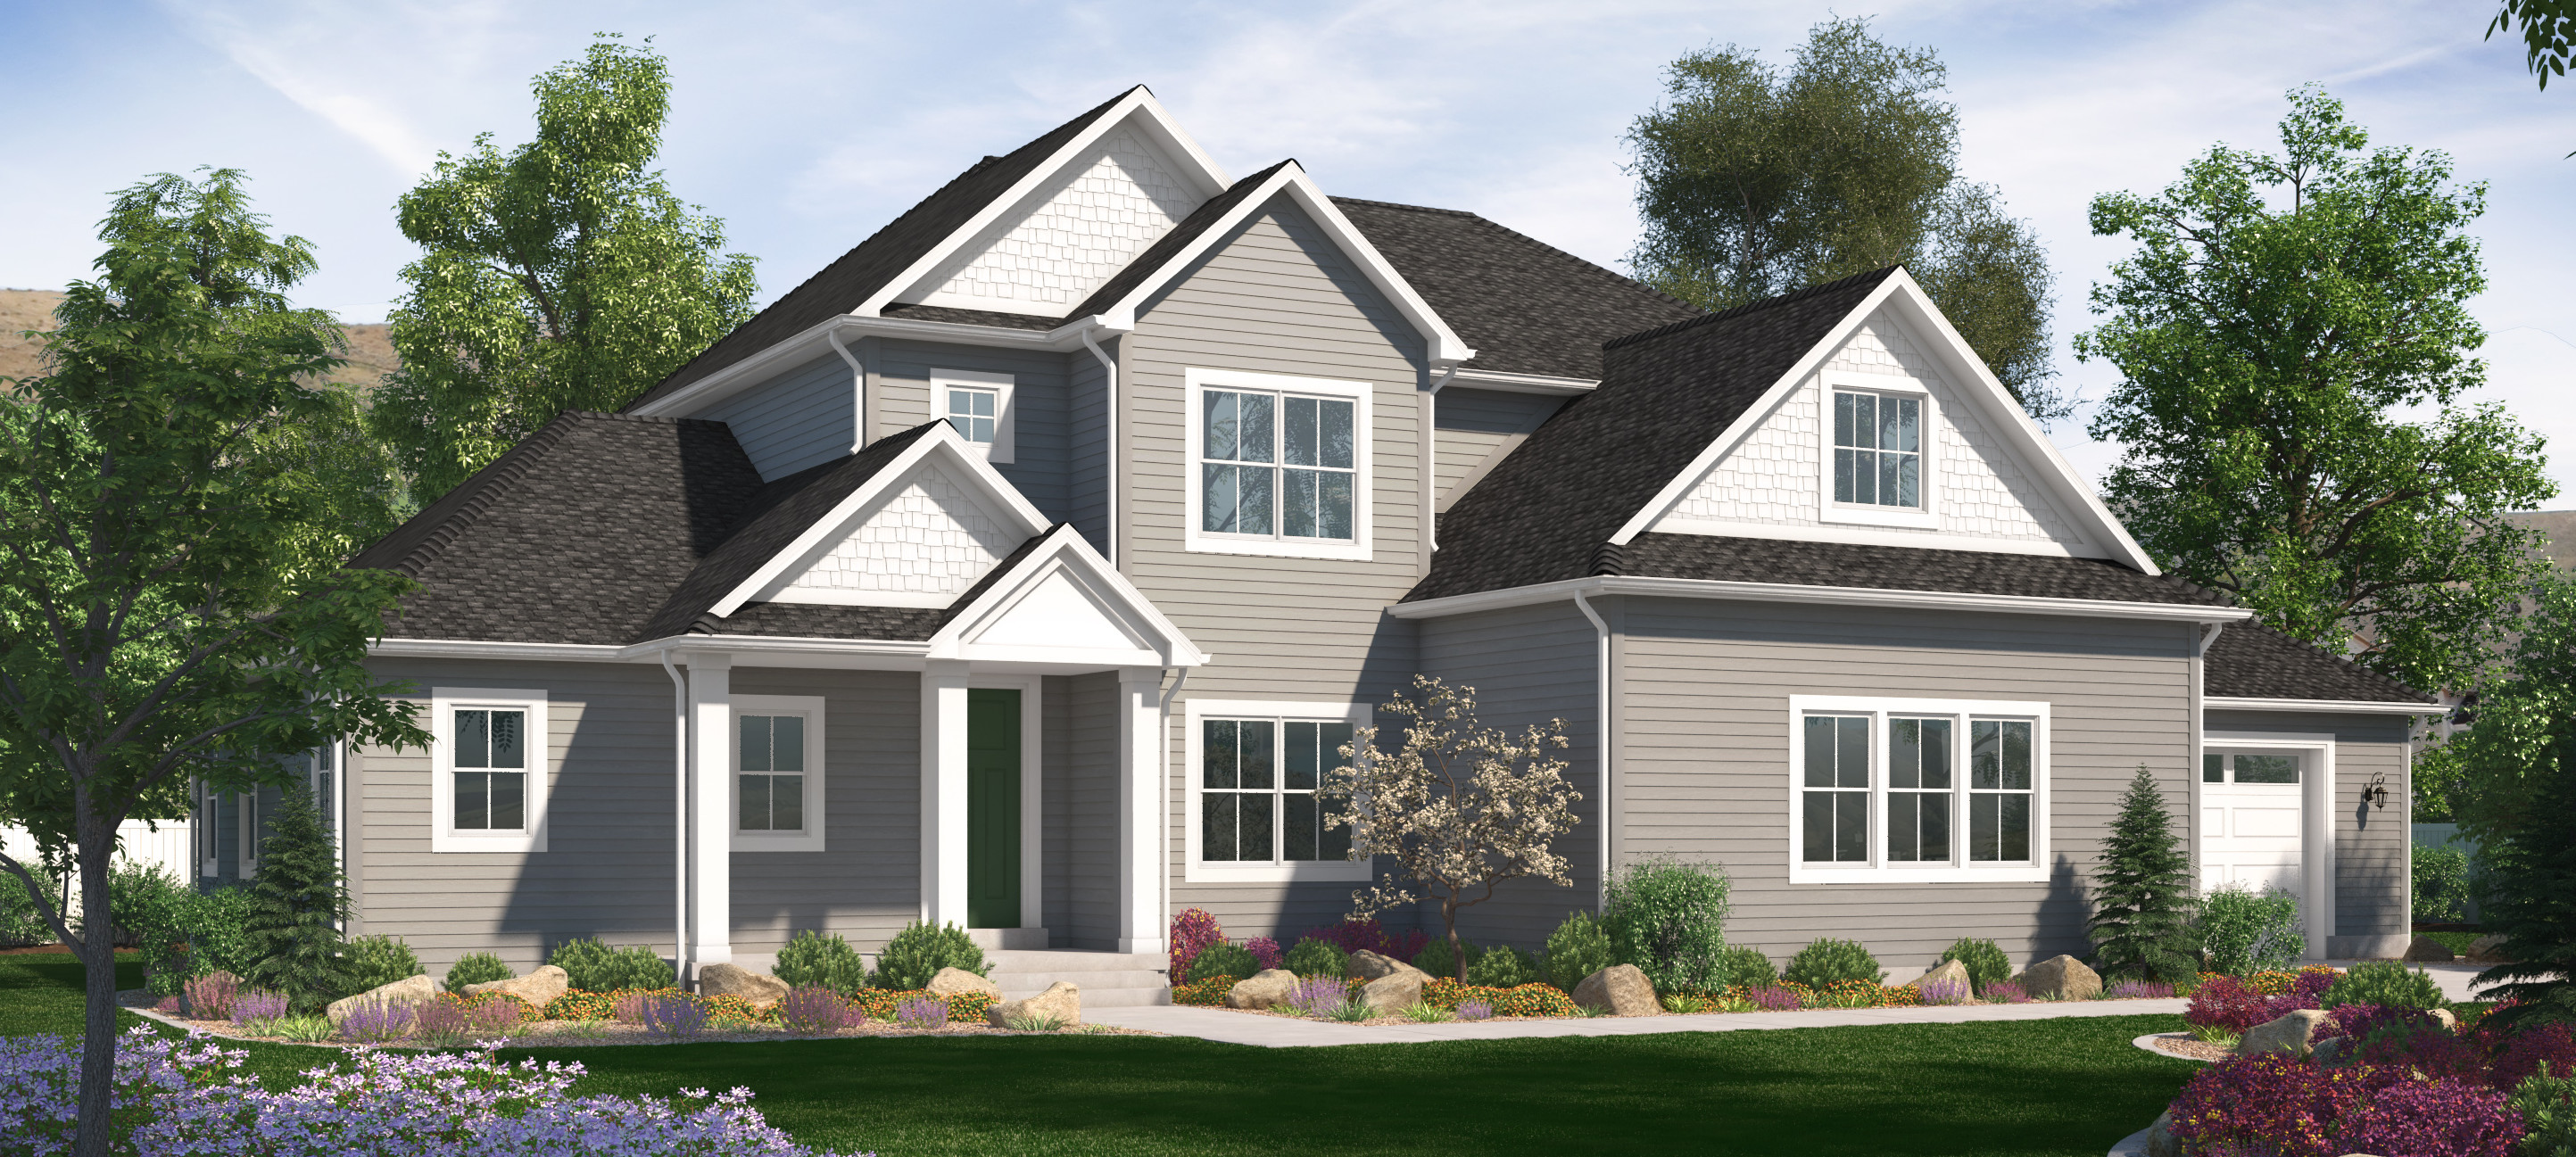 2016 Cache Valley Parade of Homes